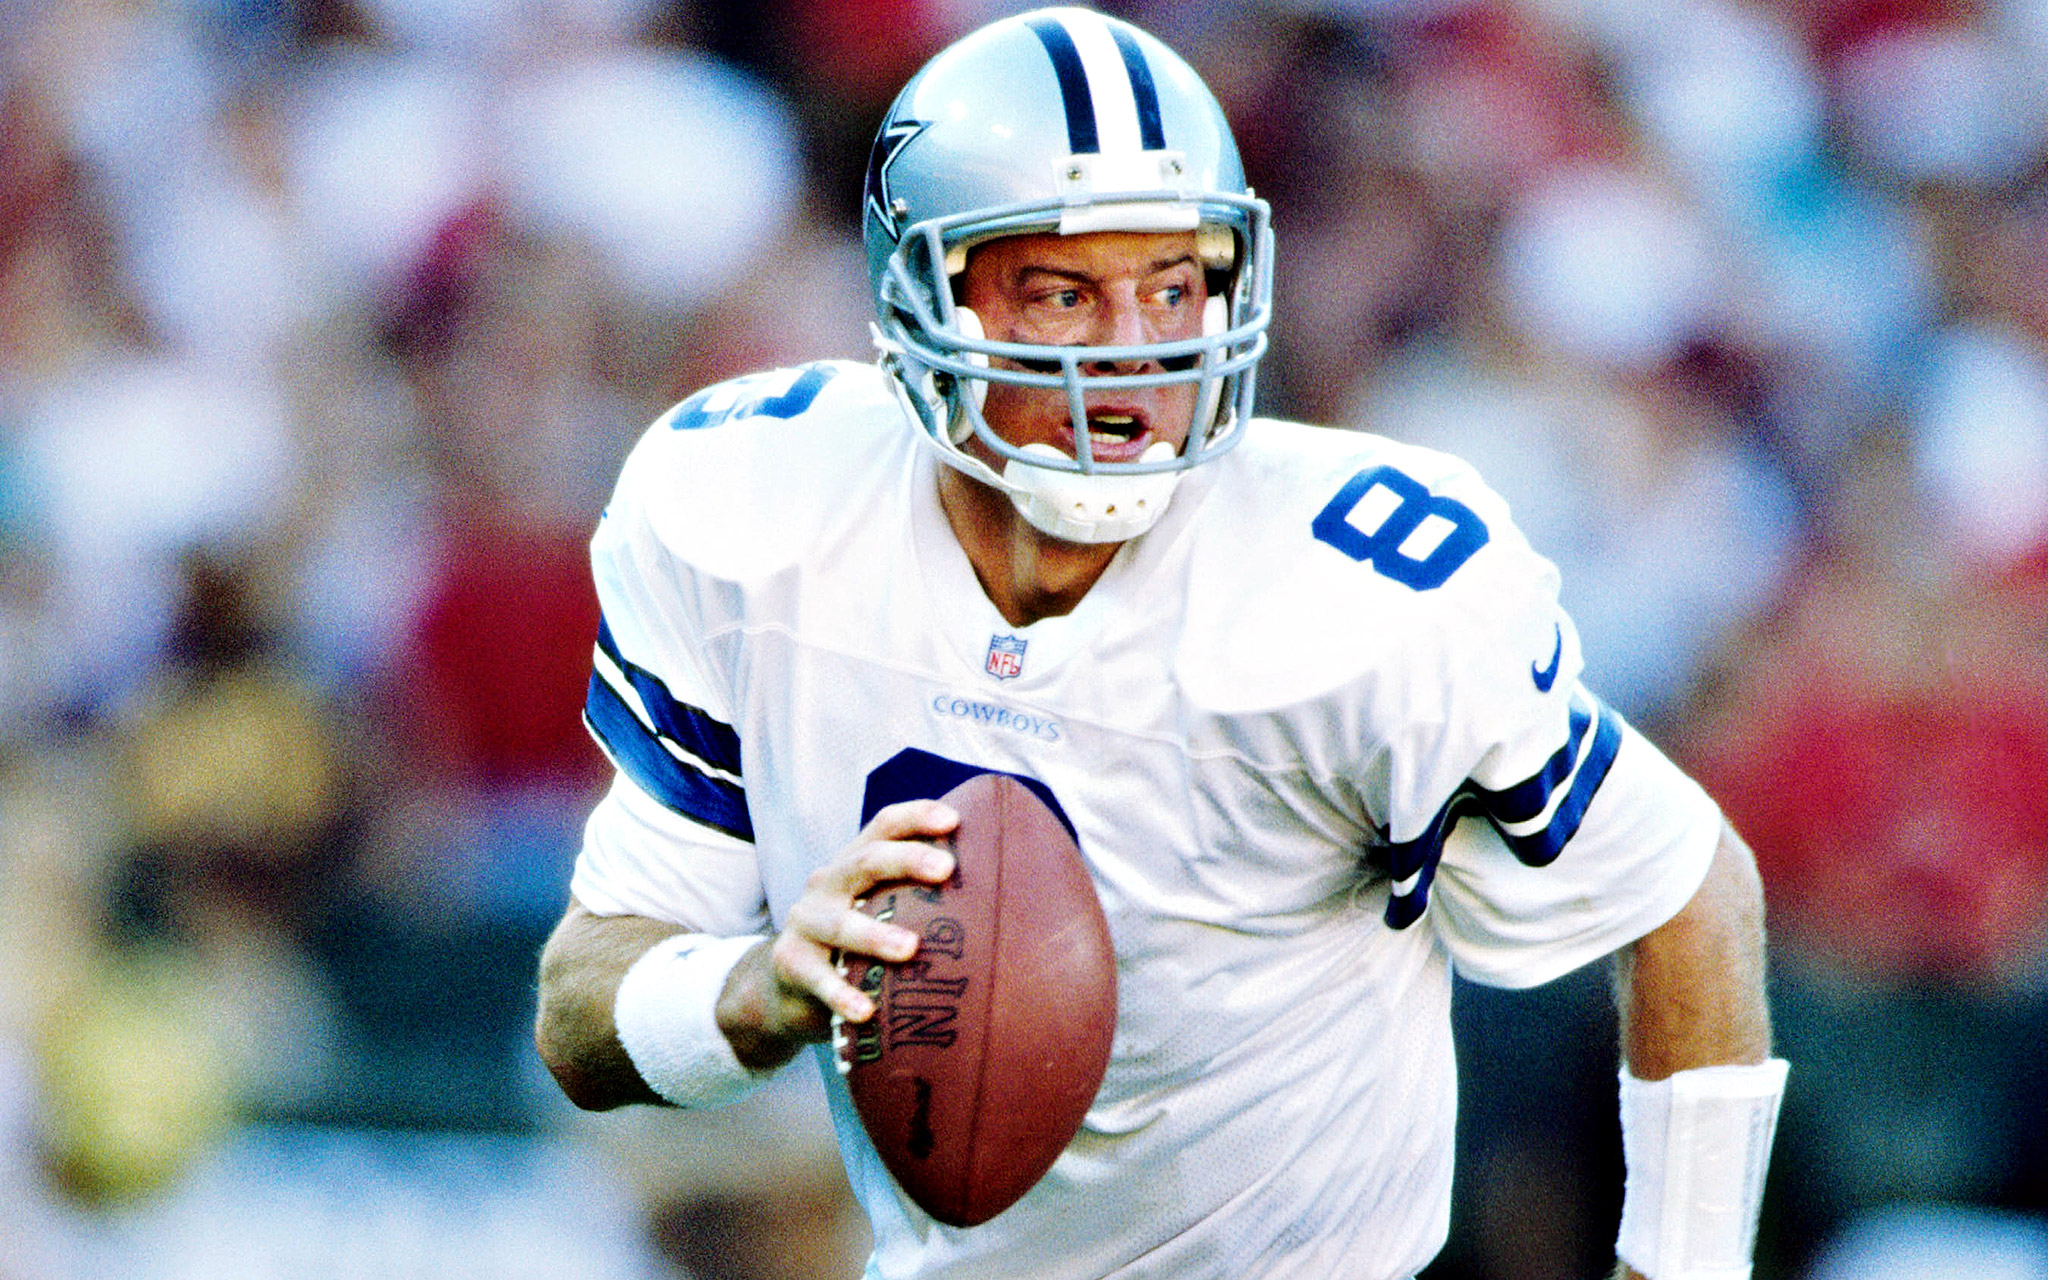 Who is troy aikman dating now 10